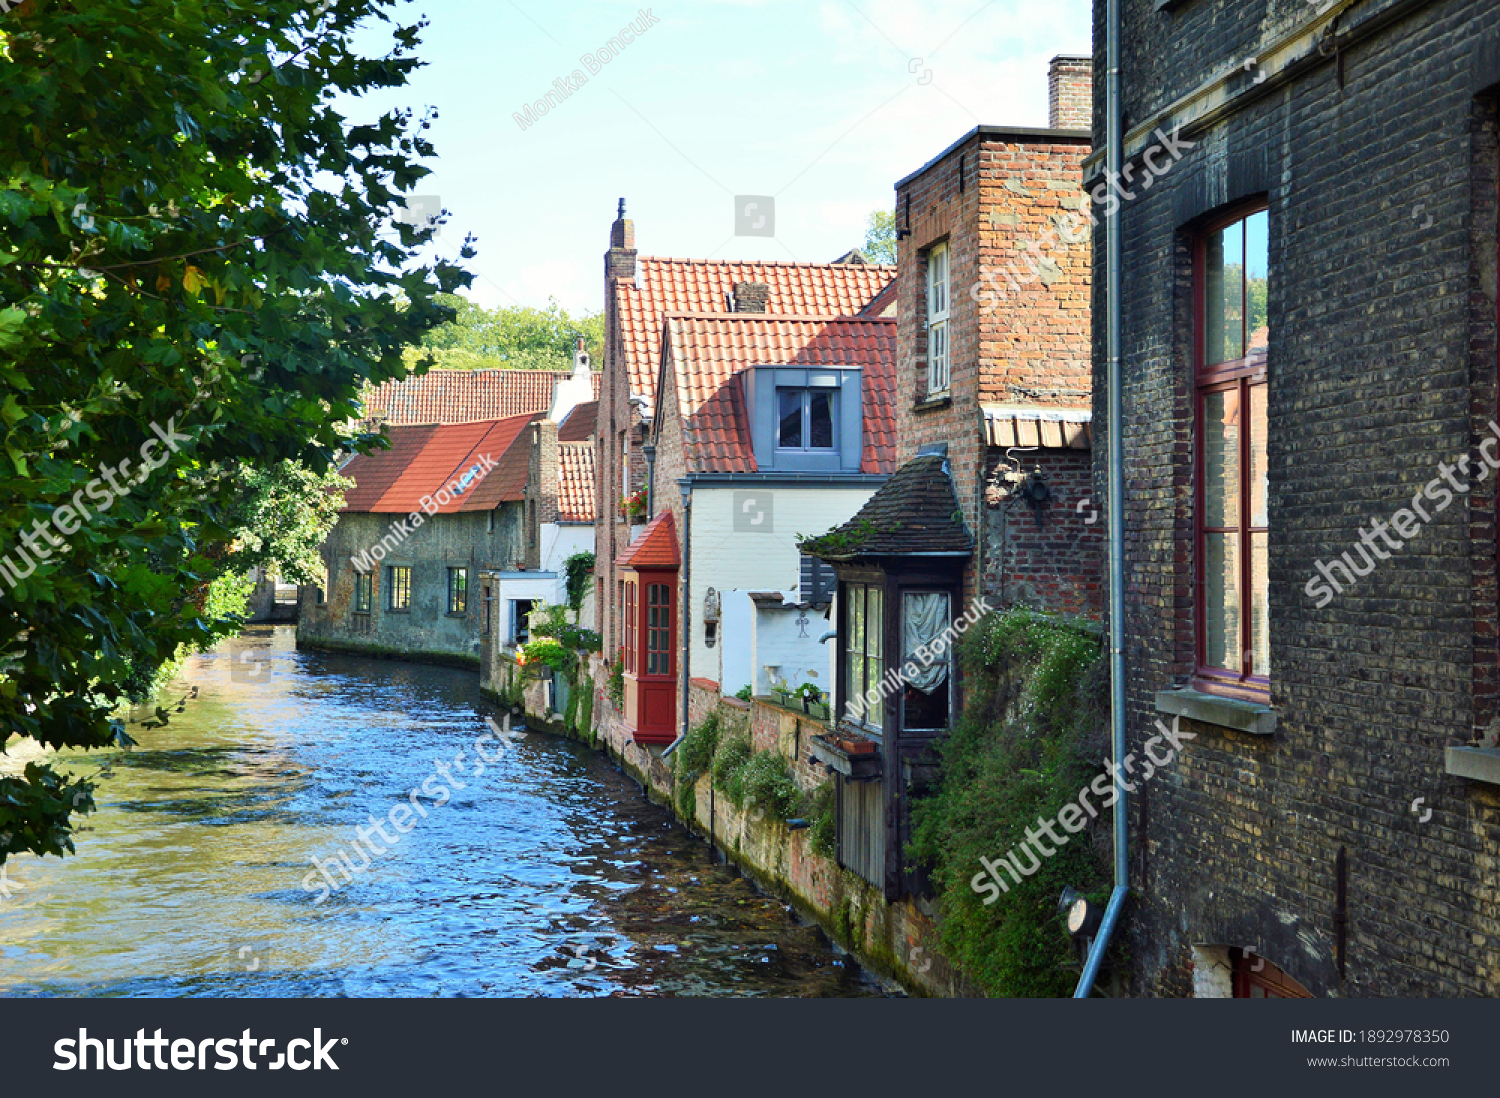 stock-photo-a-waterway-in-bruges-with-ol